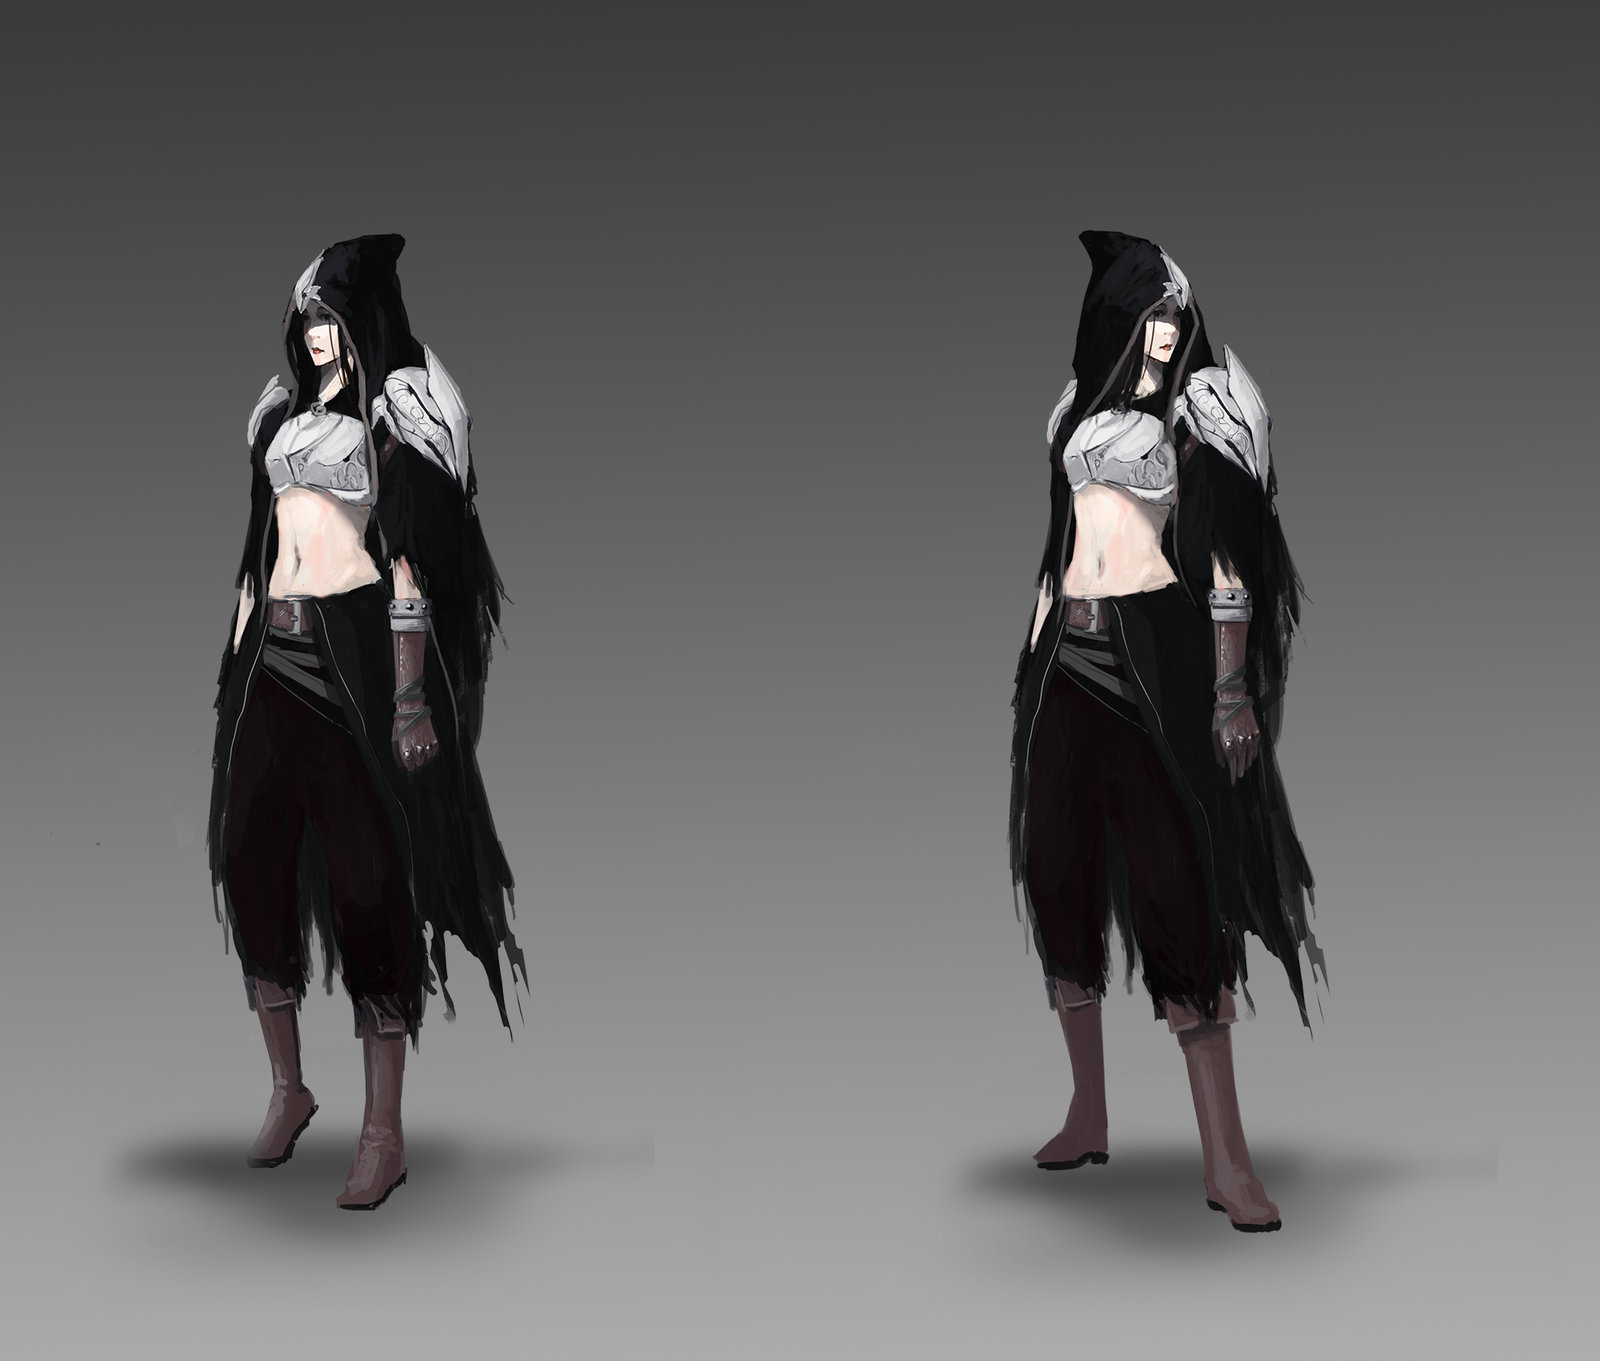 Dying Ember - Main Character concept